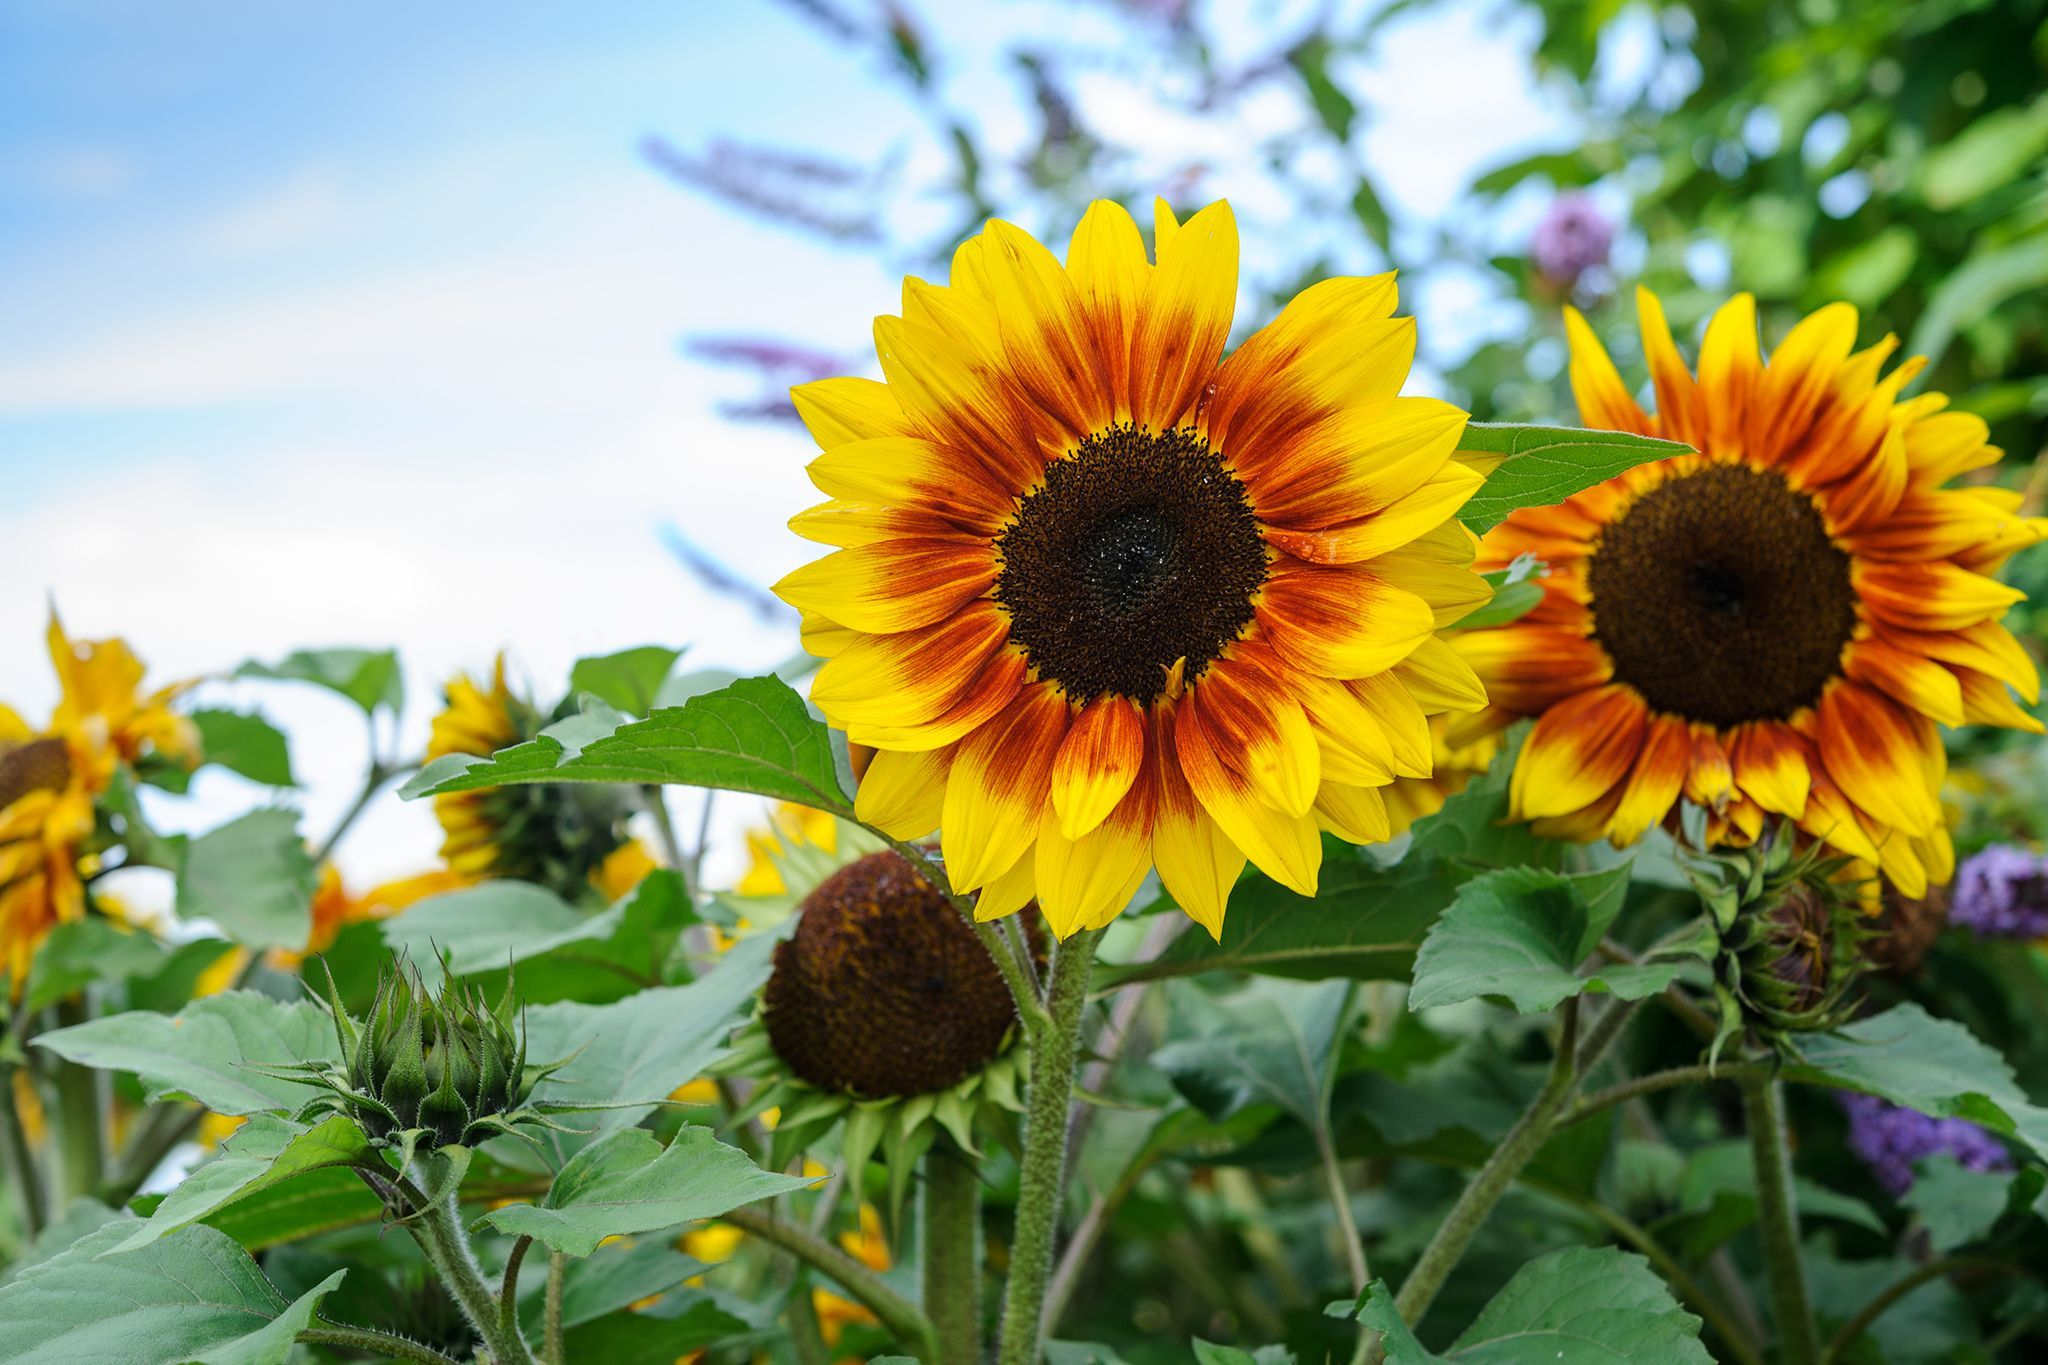 How To Grow Sunflowers From Seed Growing Sunflowers Growing Sunflowers From Seed Planting Sunflowers